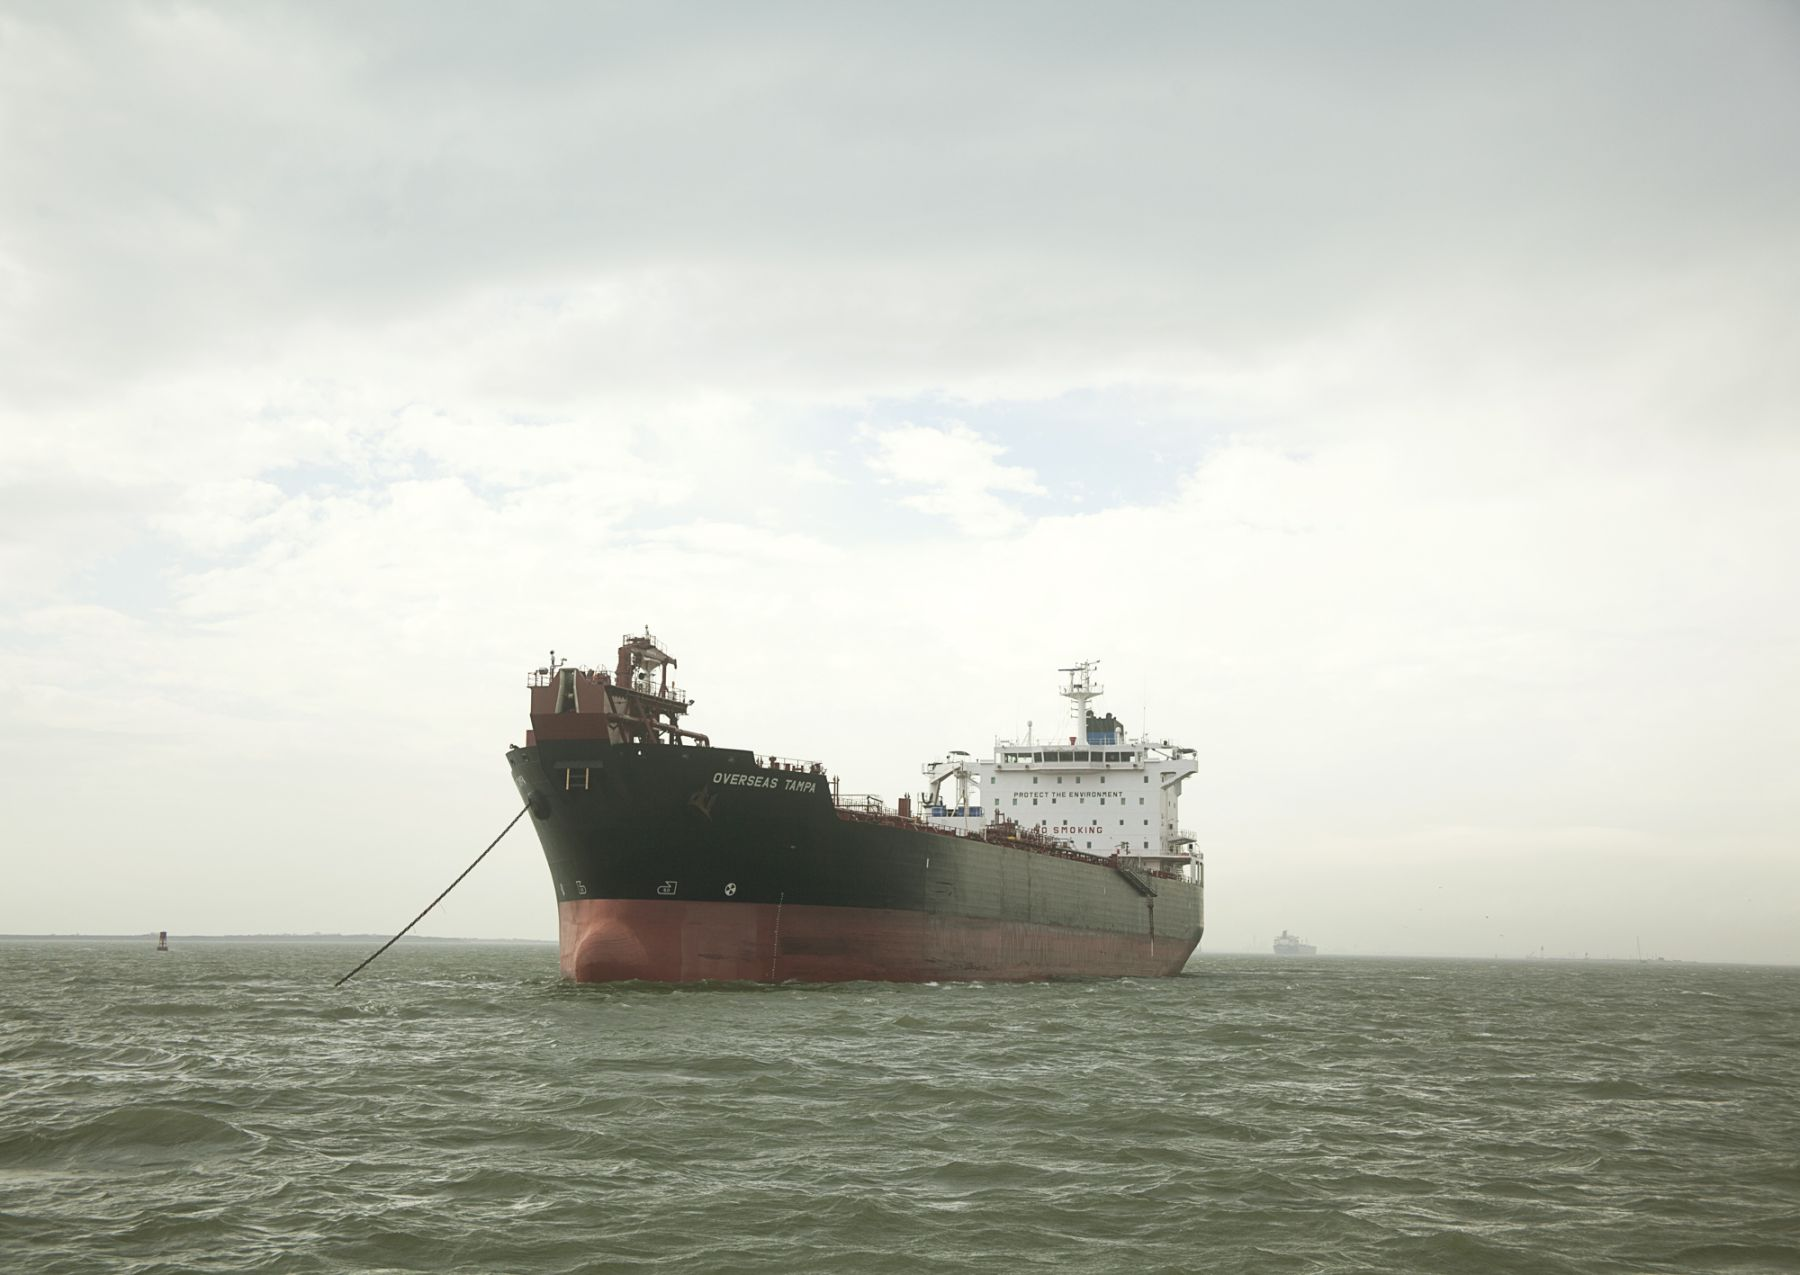 Untitled (Oil Chemical Tanker Overseas Tampa, USA), Houston Ship Channel, Texas, 2015, 17 x 22 or 27 x 40 inch chromogenic print